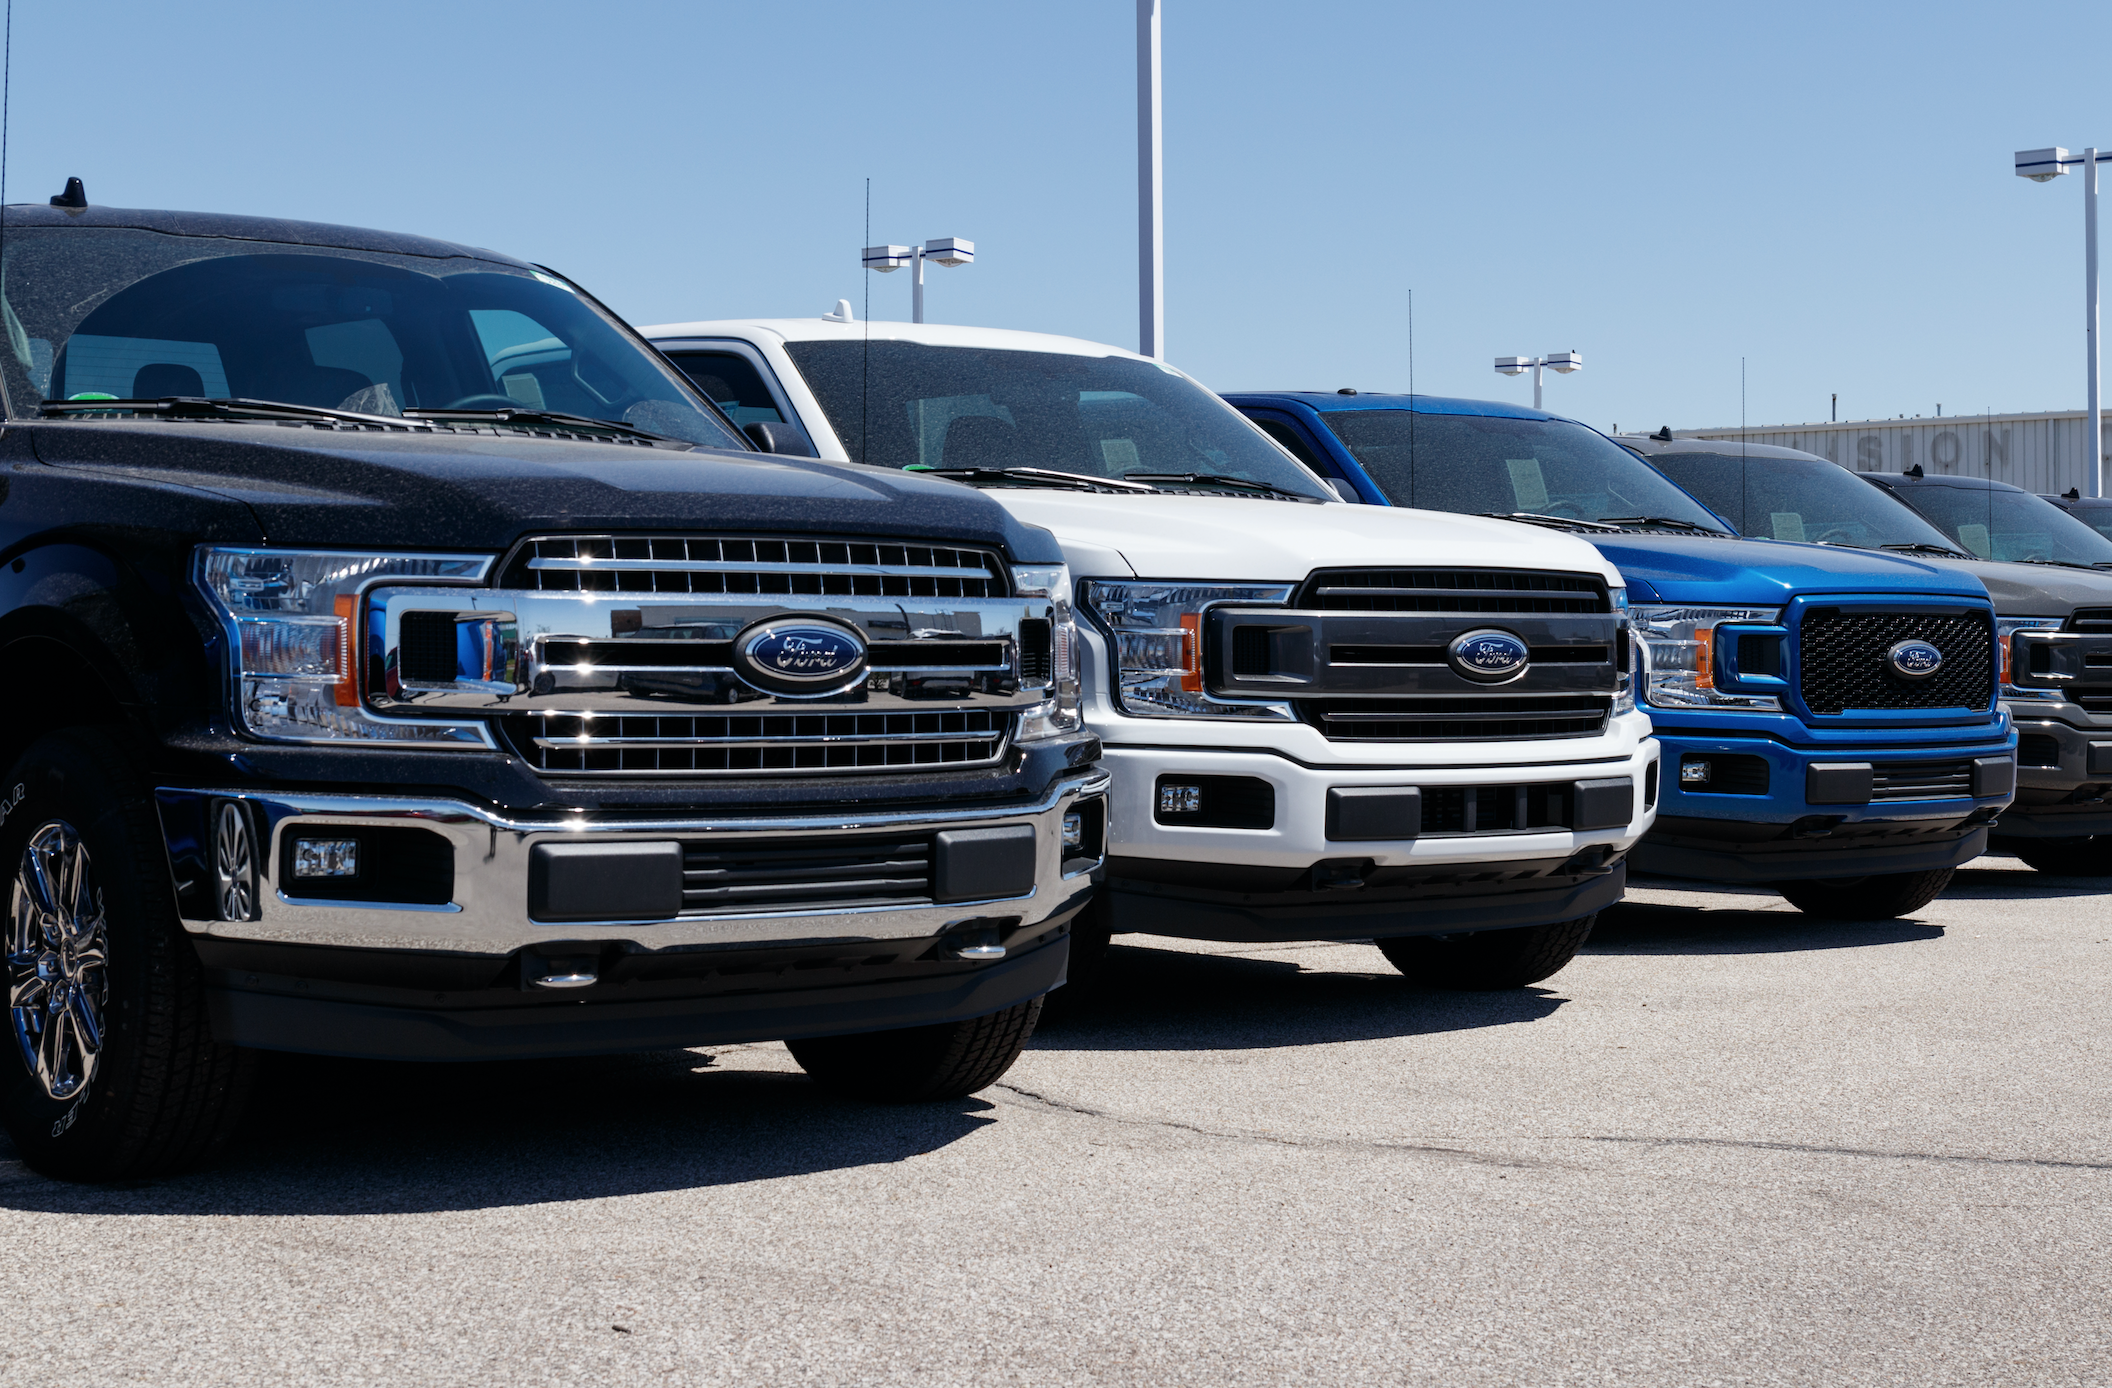 Black Friday is the Perfect Time for Truck Shopping